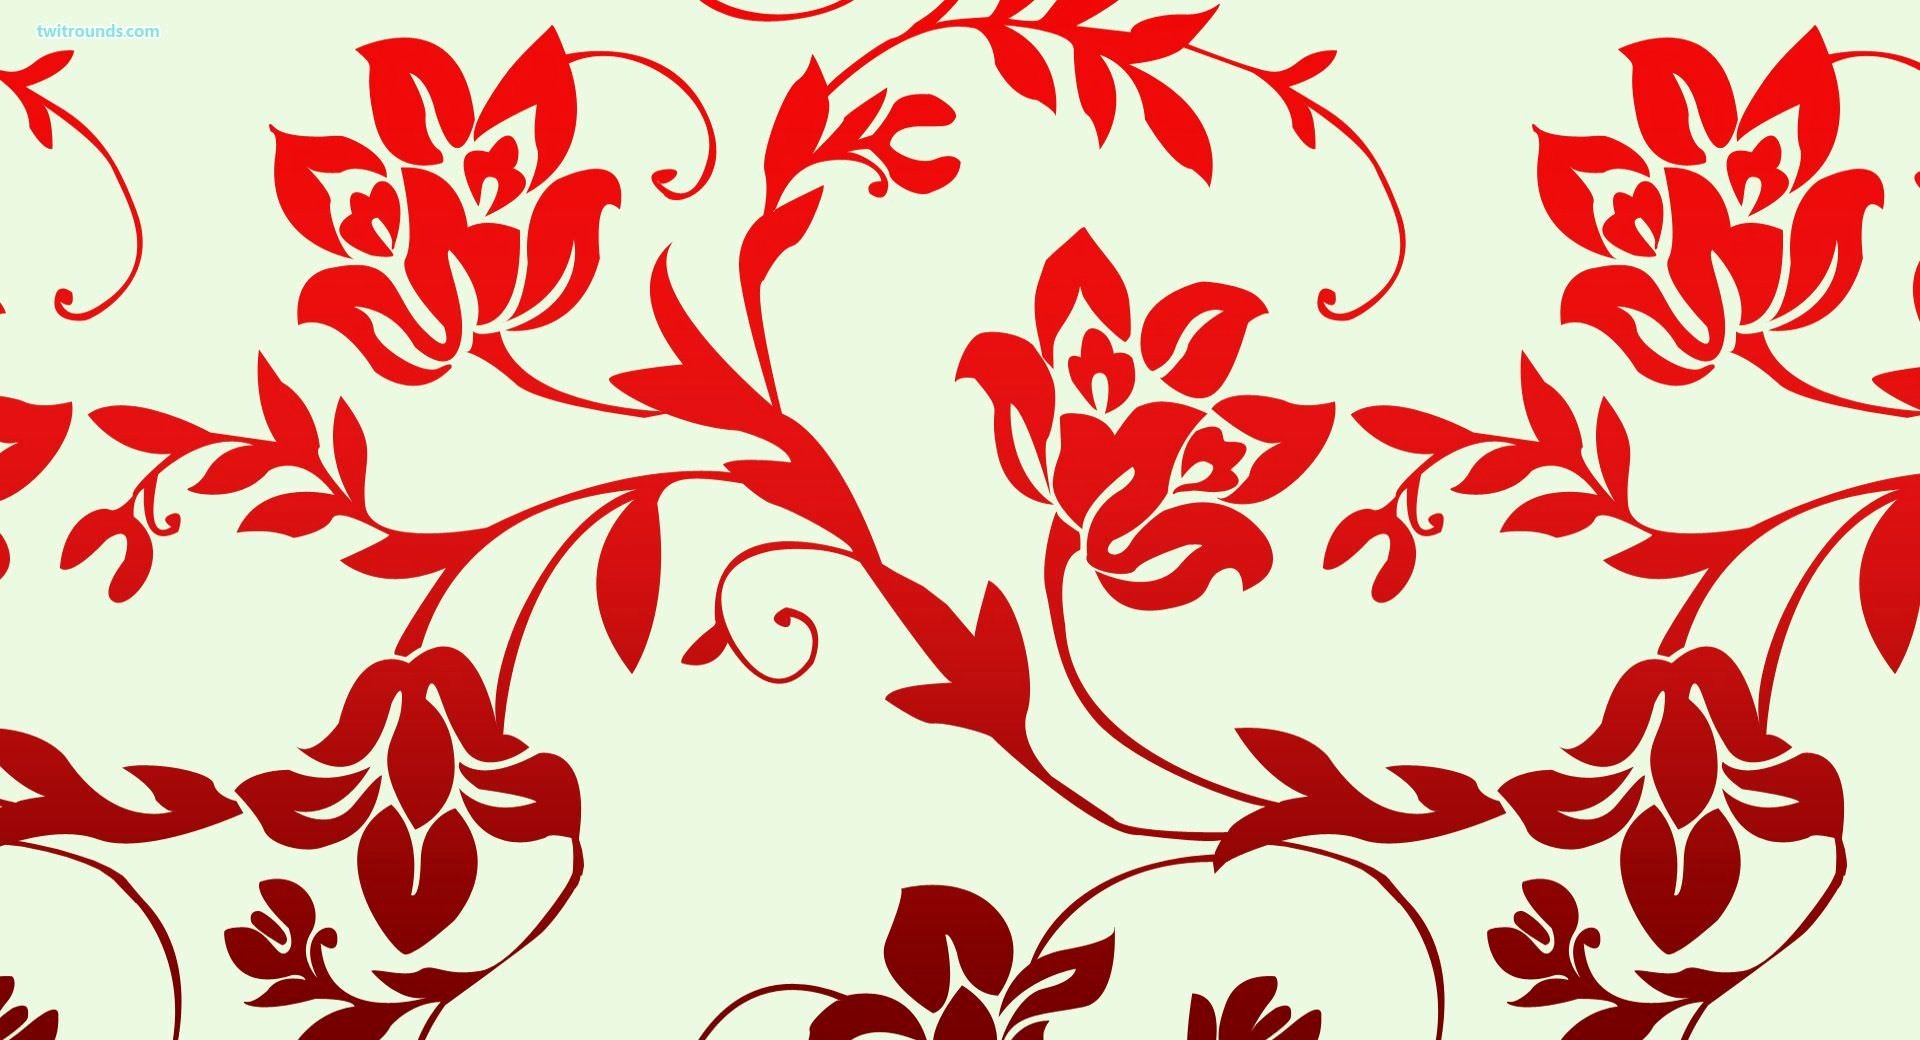 Flower Background Design Images Awesome 15 Red Floral Wallpapers Floral Patterns